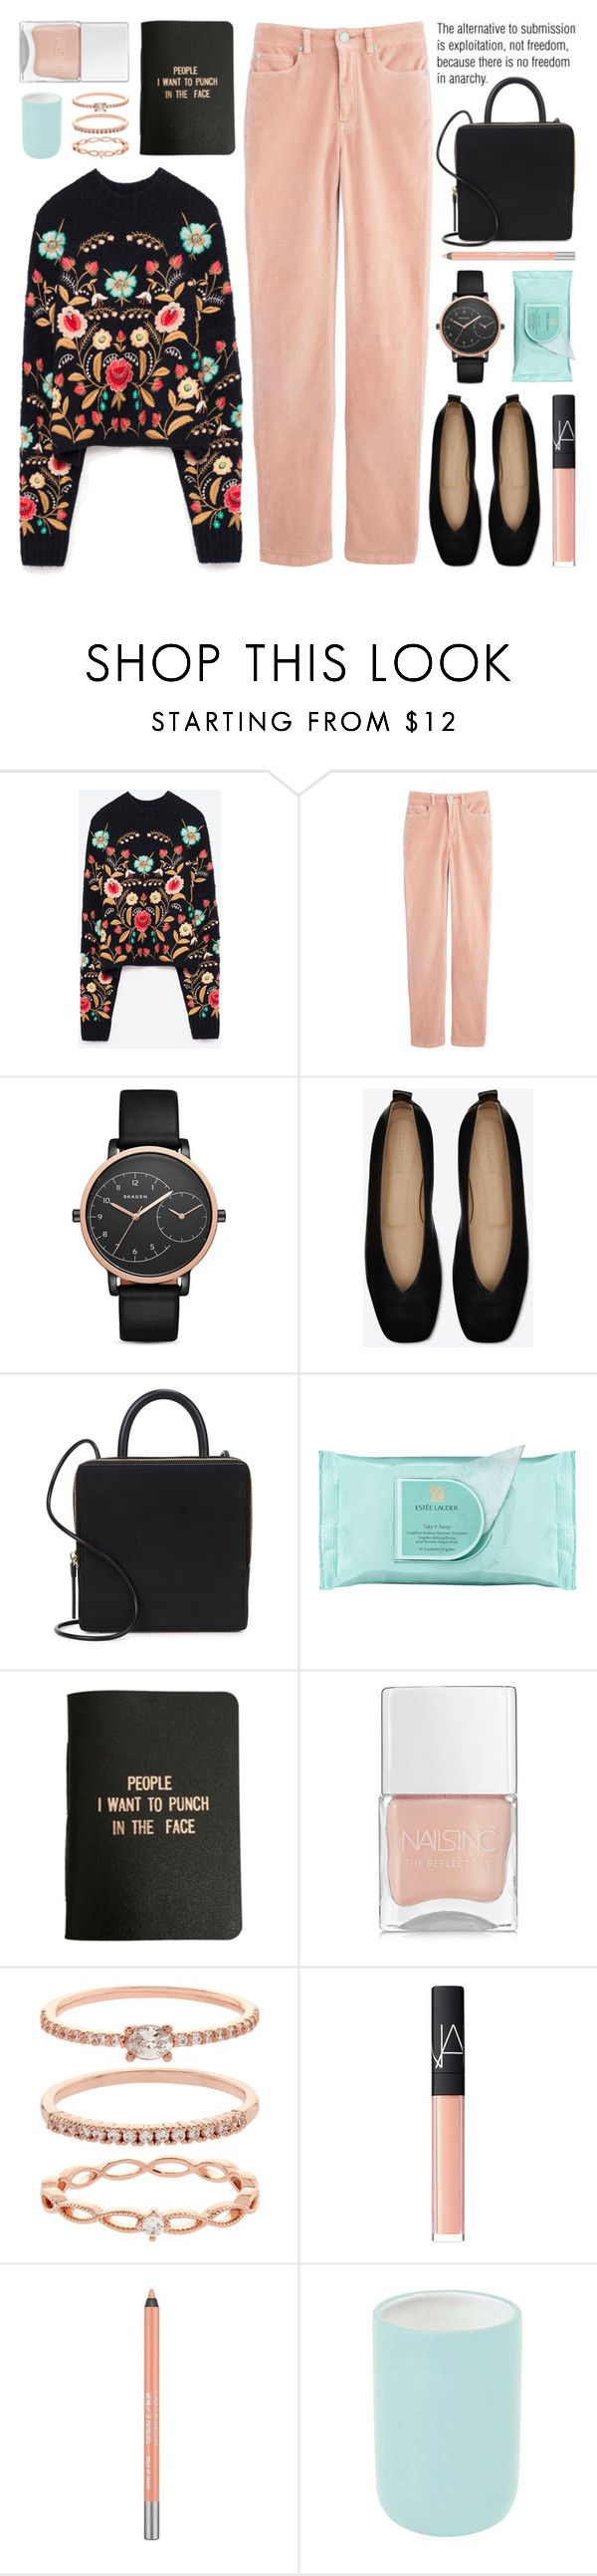 """""""embroidered sweater"""" by jesuisunlapin on Polyvore featuring Belgique, Skagen, Building Block, Estée Lauder, A Weathered Penny, Nails Inc., Accessorize, NARS Cosmetics, Urban Decay and Aquanova"""